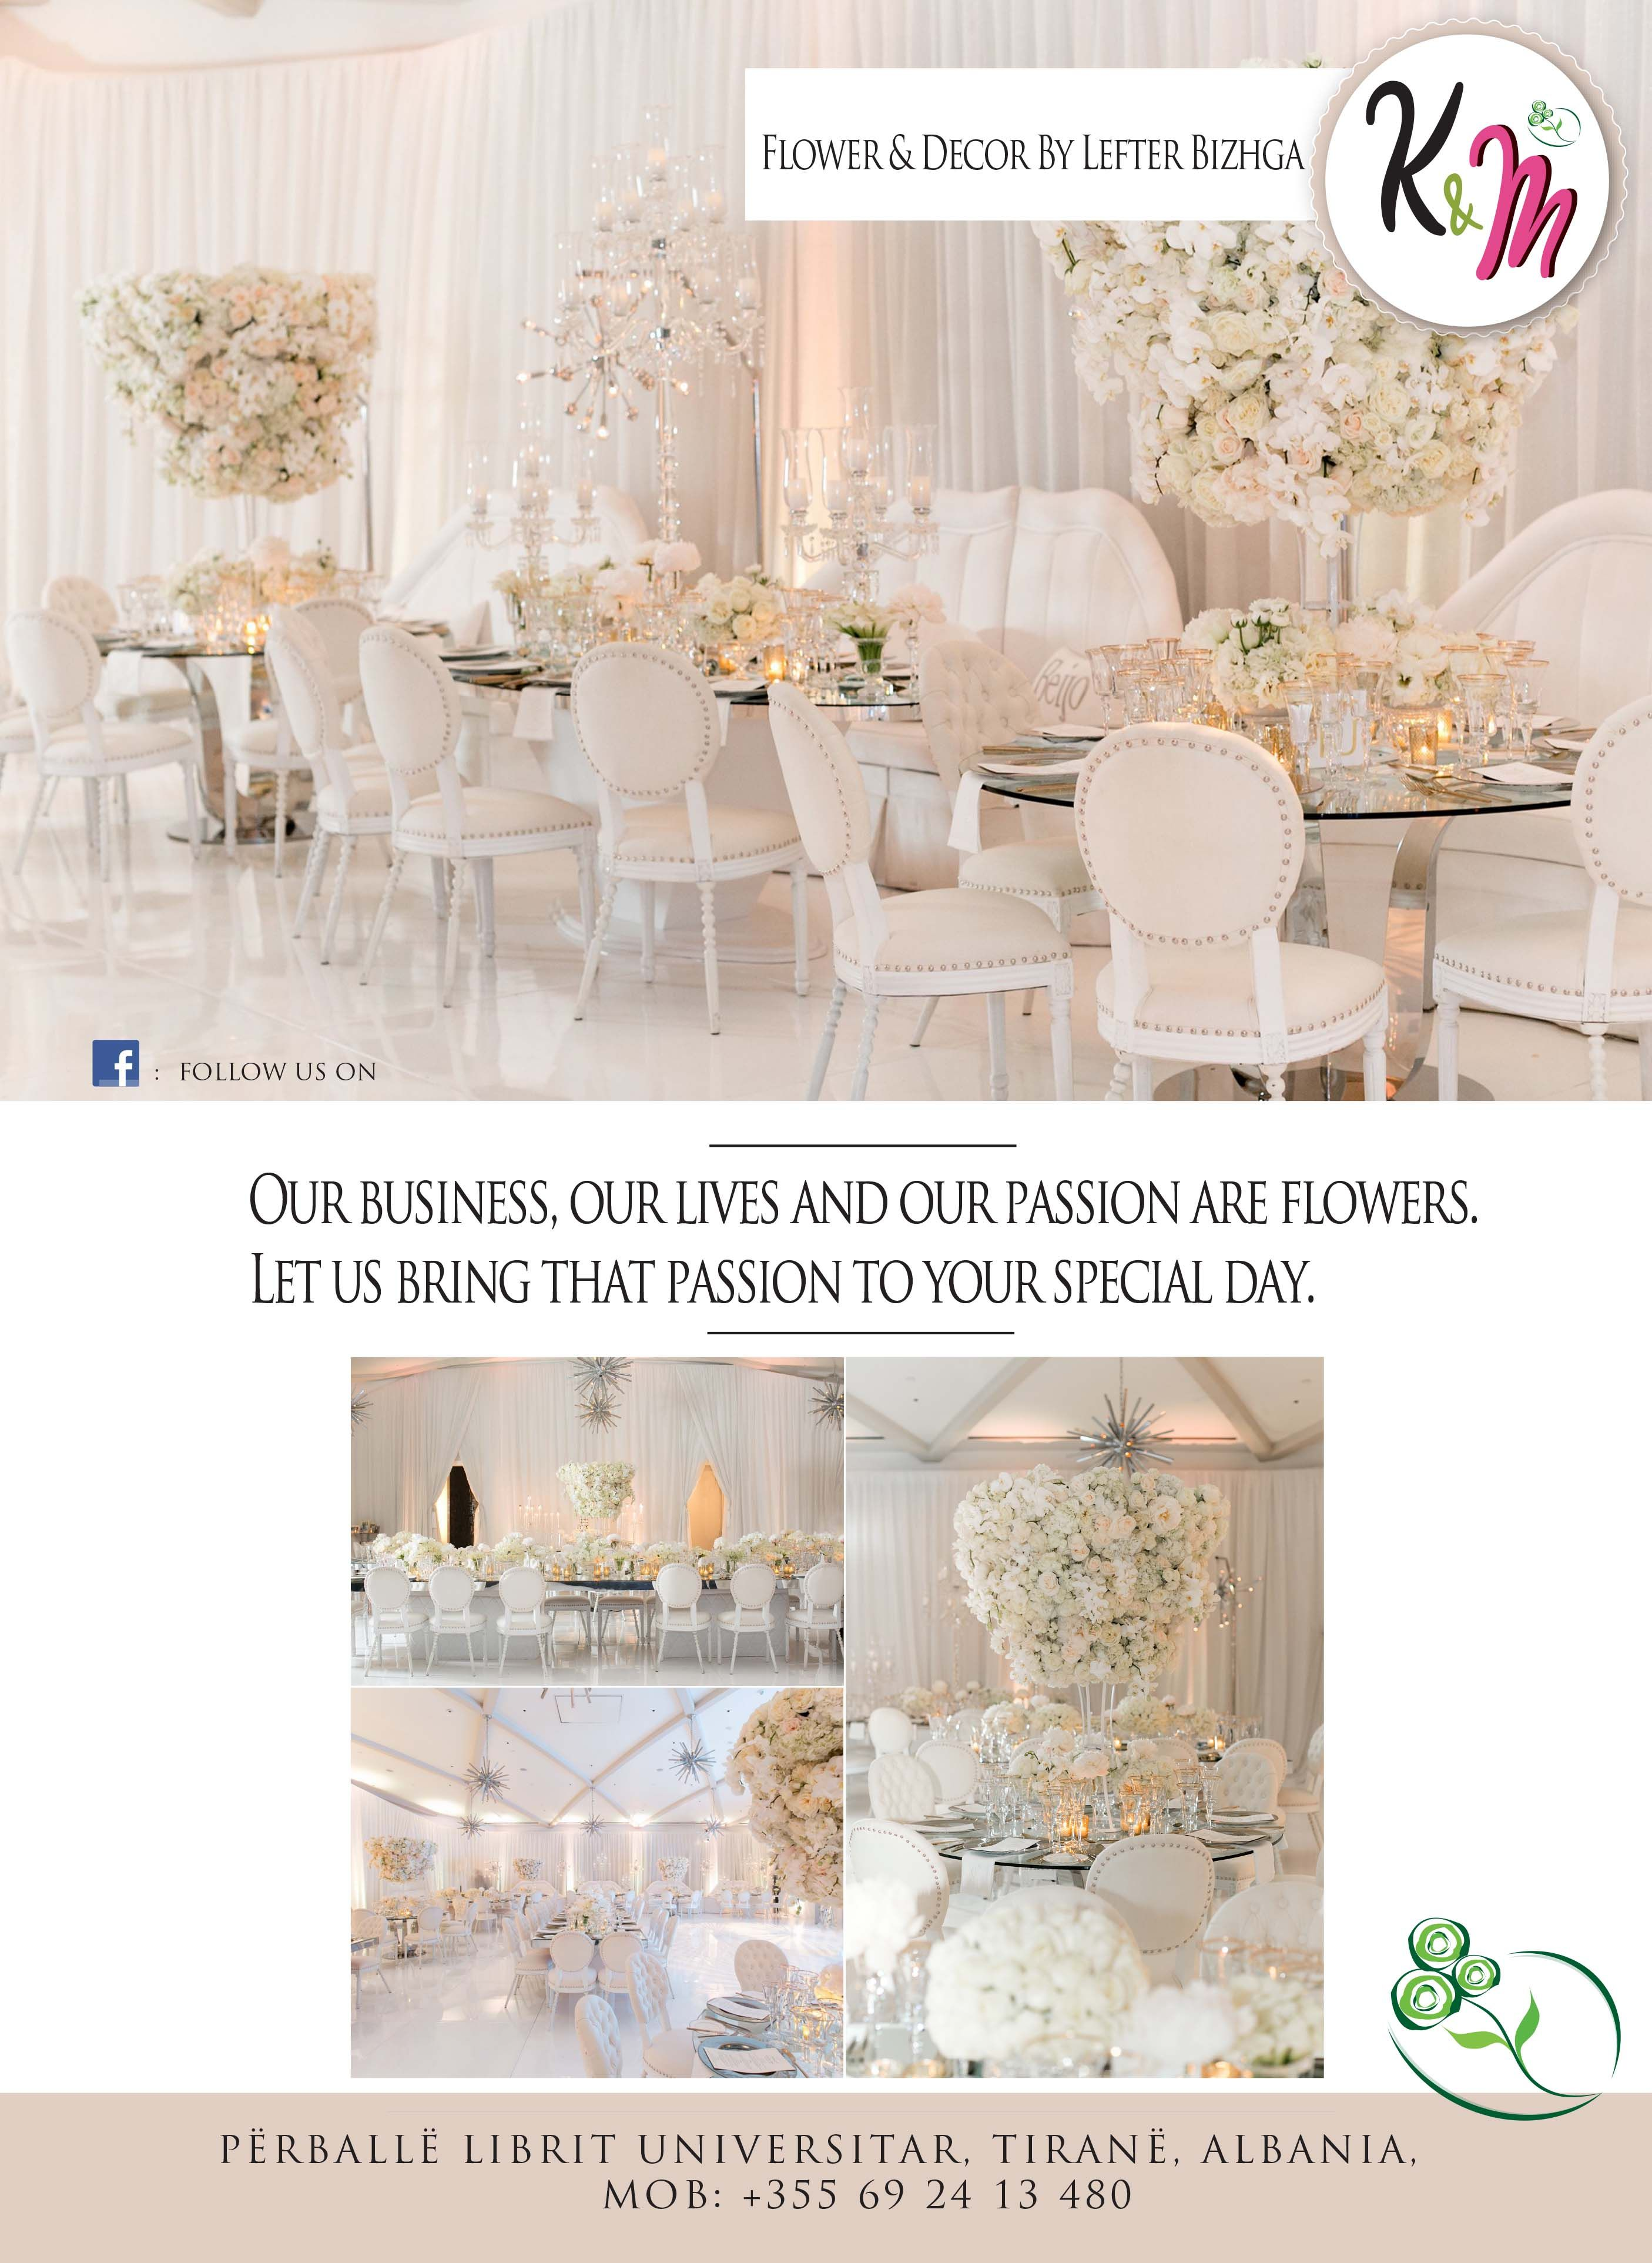 Wedding decorations for home december 2018 Ti Sposi